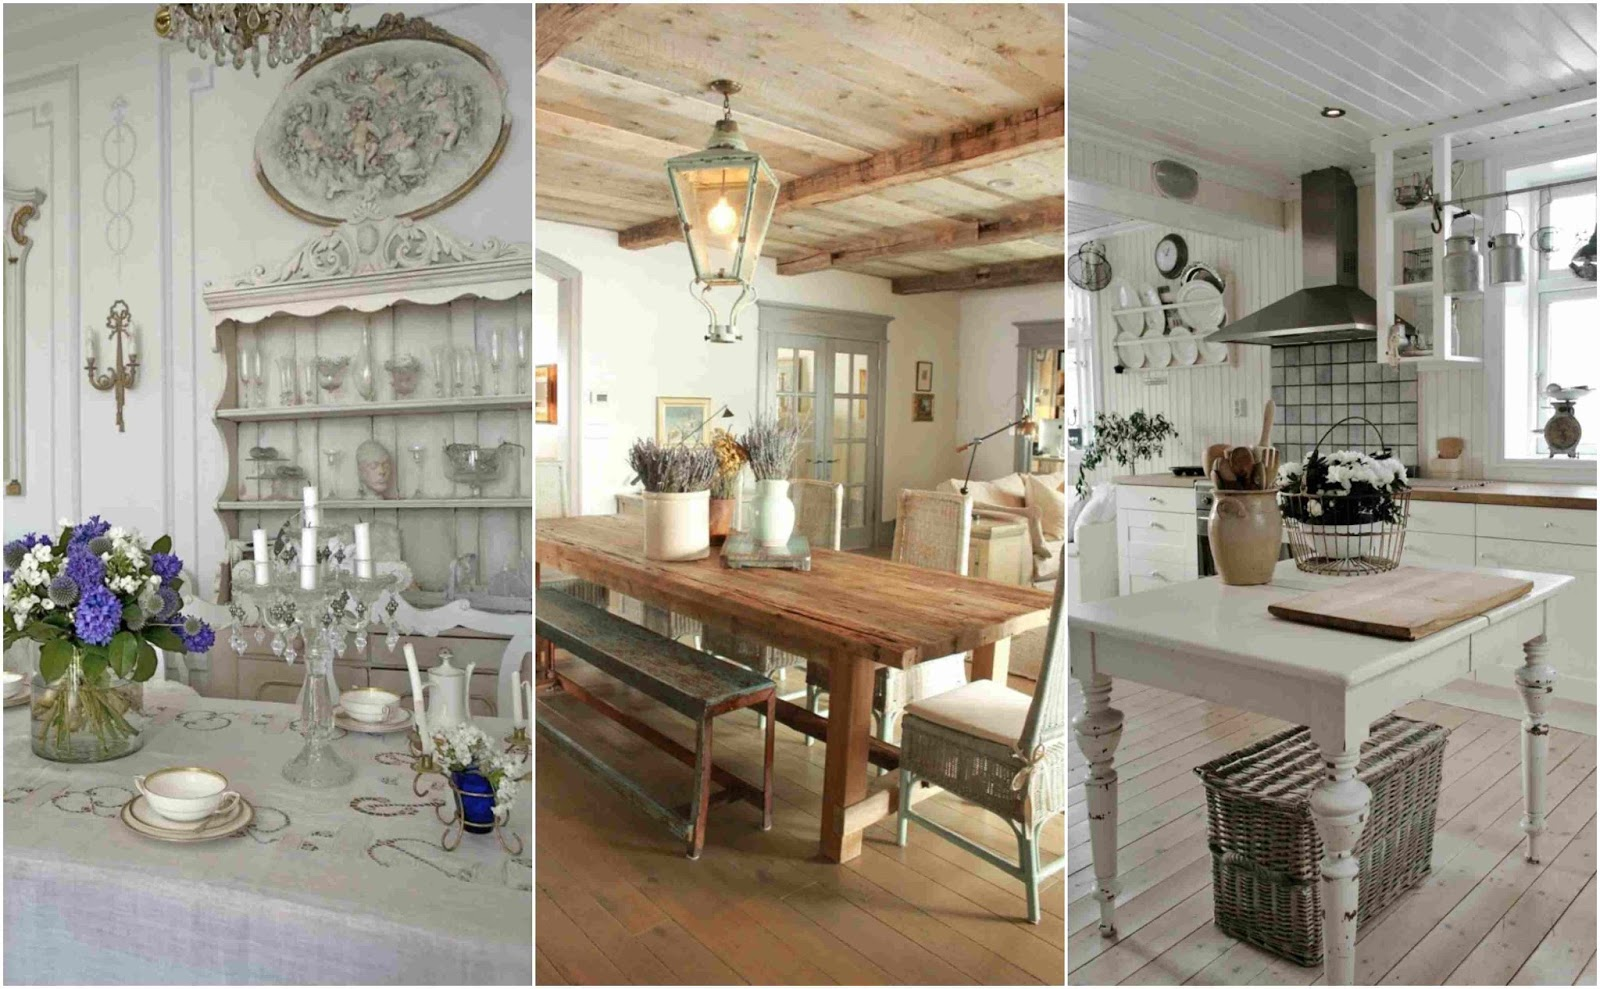 Kitchen design in the style of provence french and for Provence kitchen design